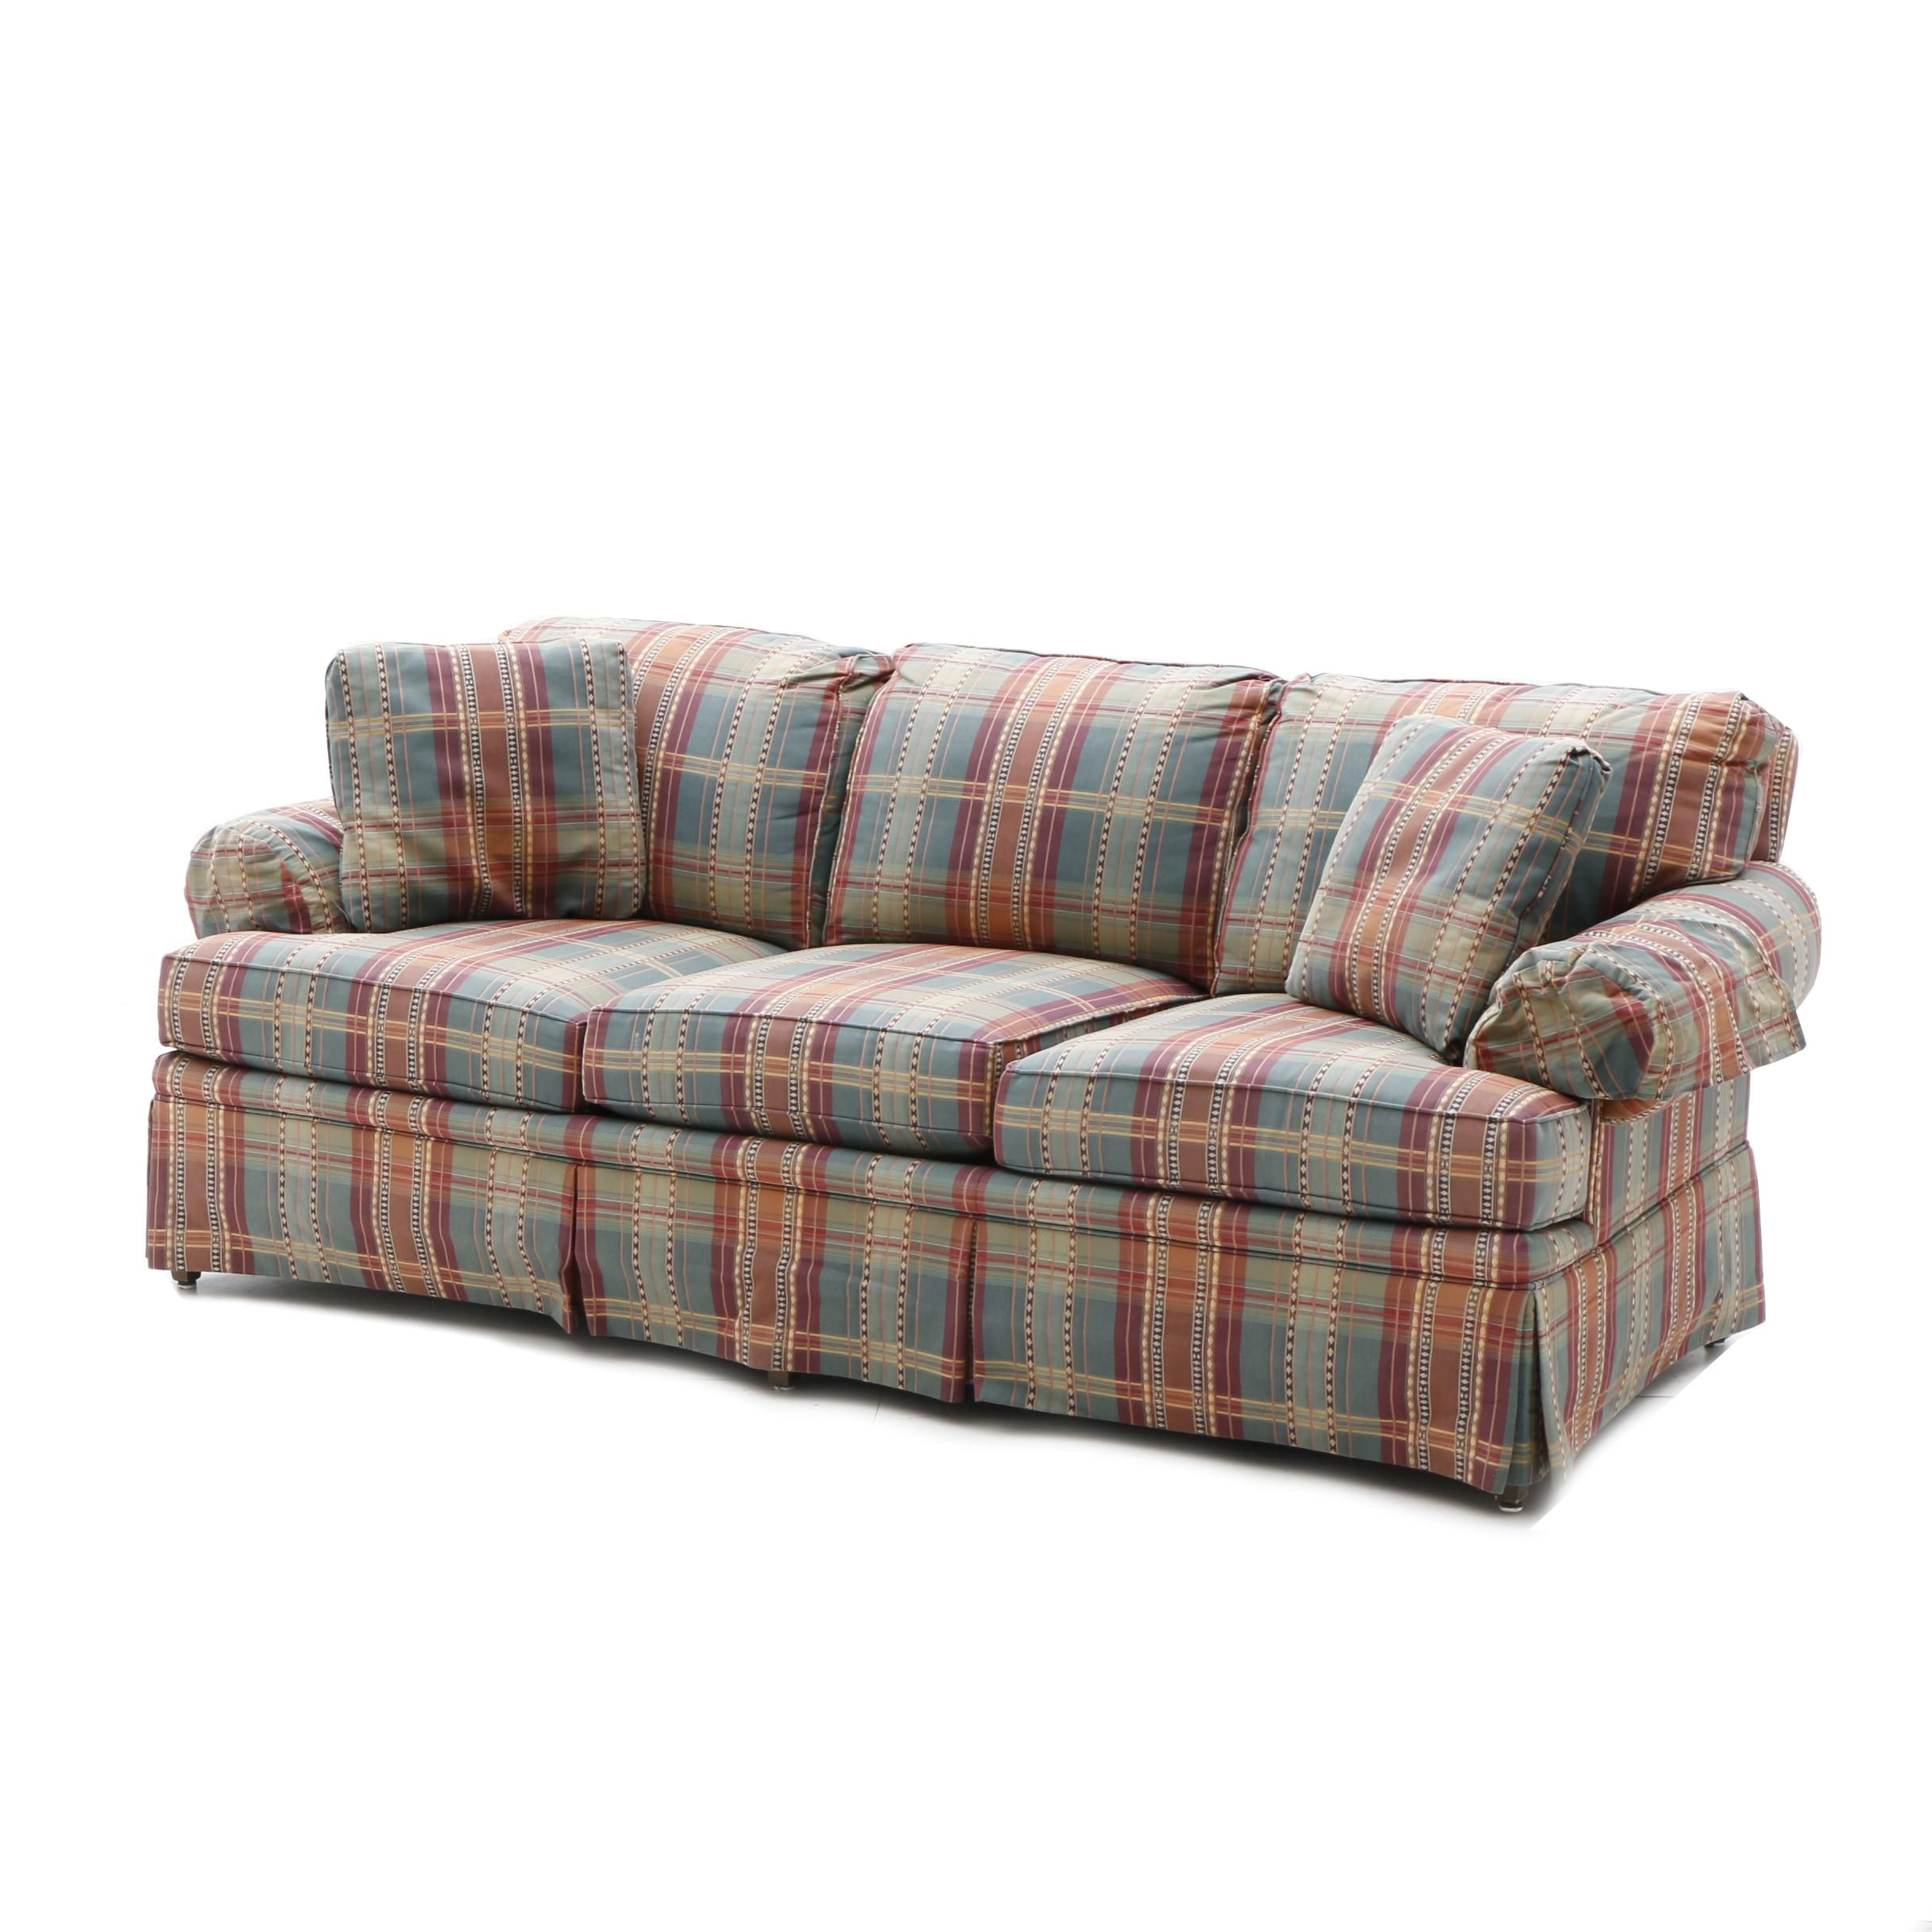 Plaid Upholstered Sofa by Drexel Heritage, 20th Century